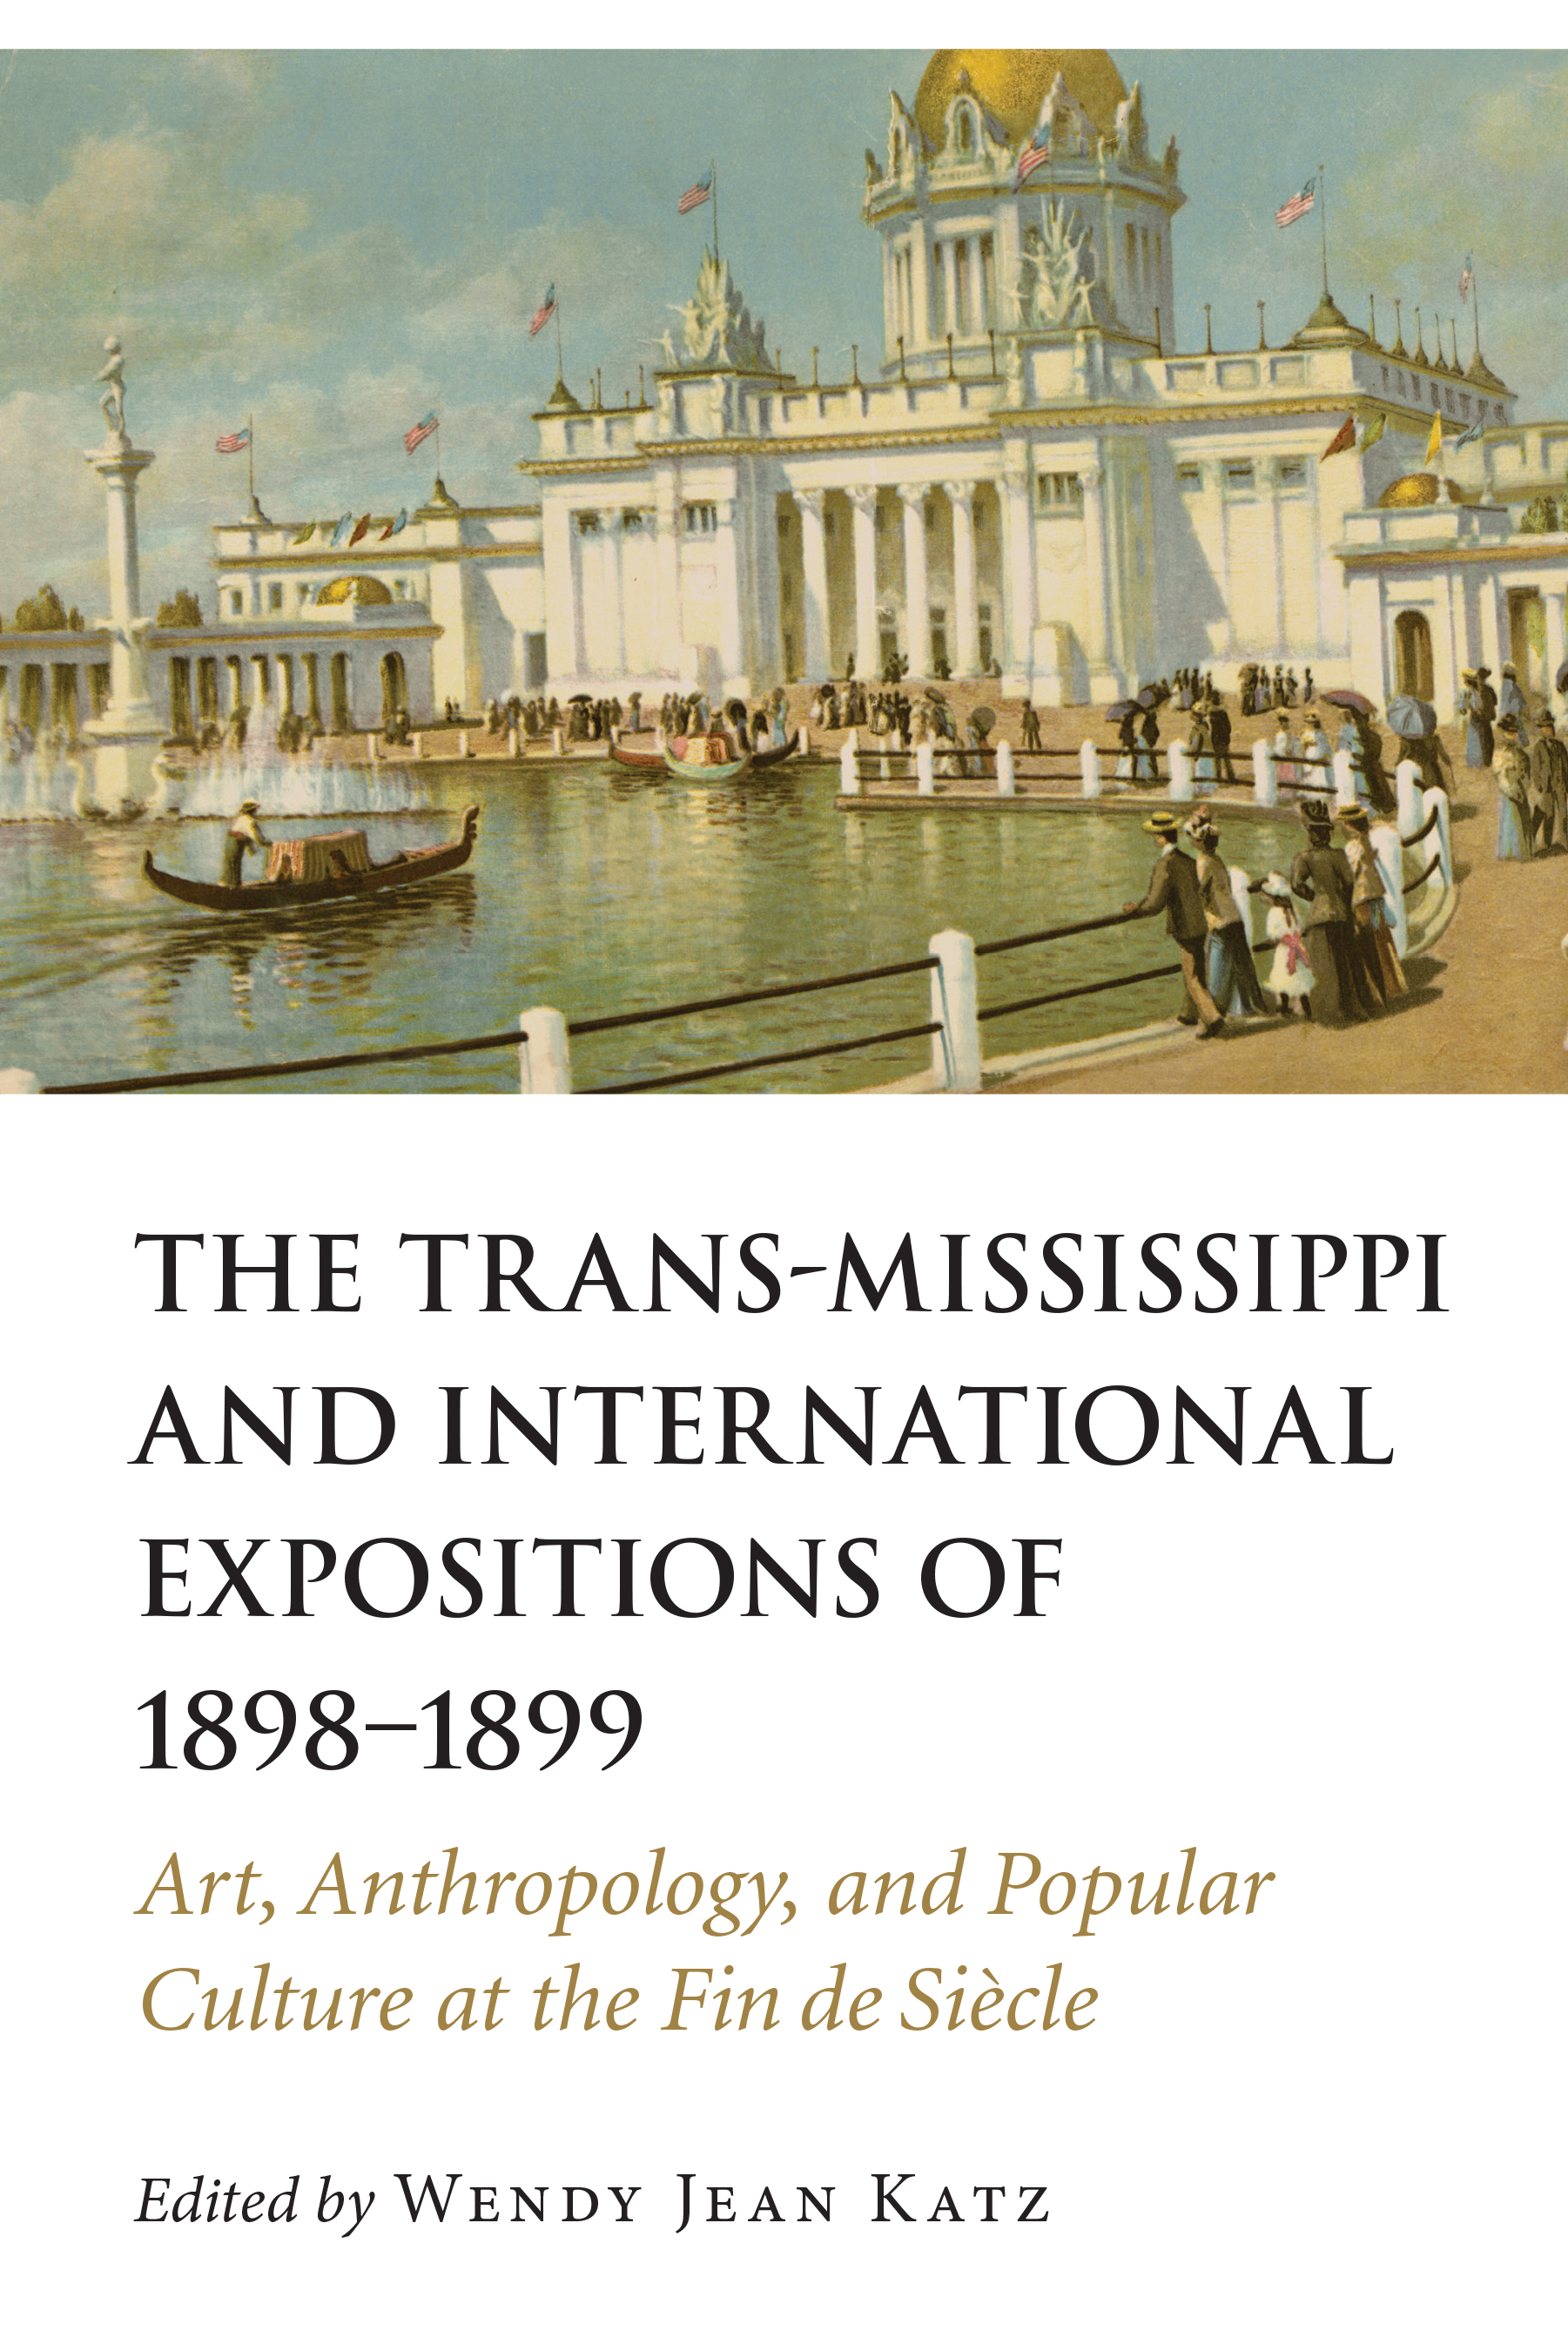 The Trans-Mississippi and International Expositions of 1898–1899: Art, Anthropology, and Popular Culture at the Fin de Siècle